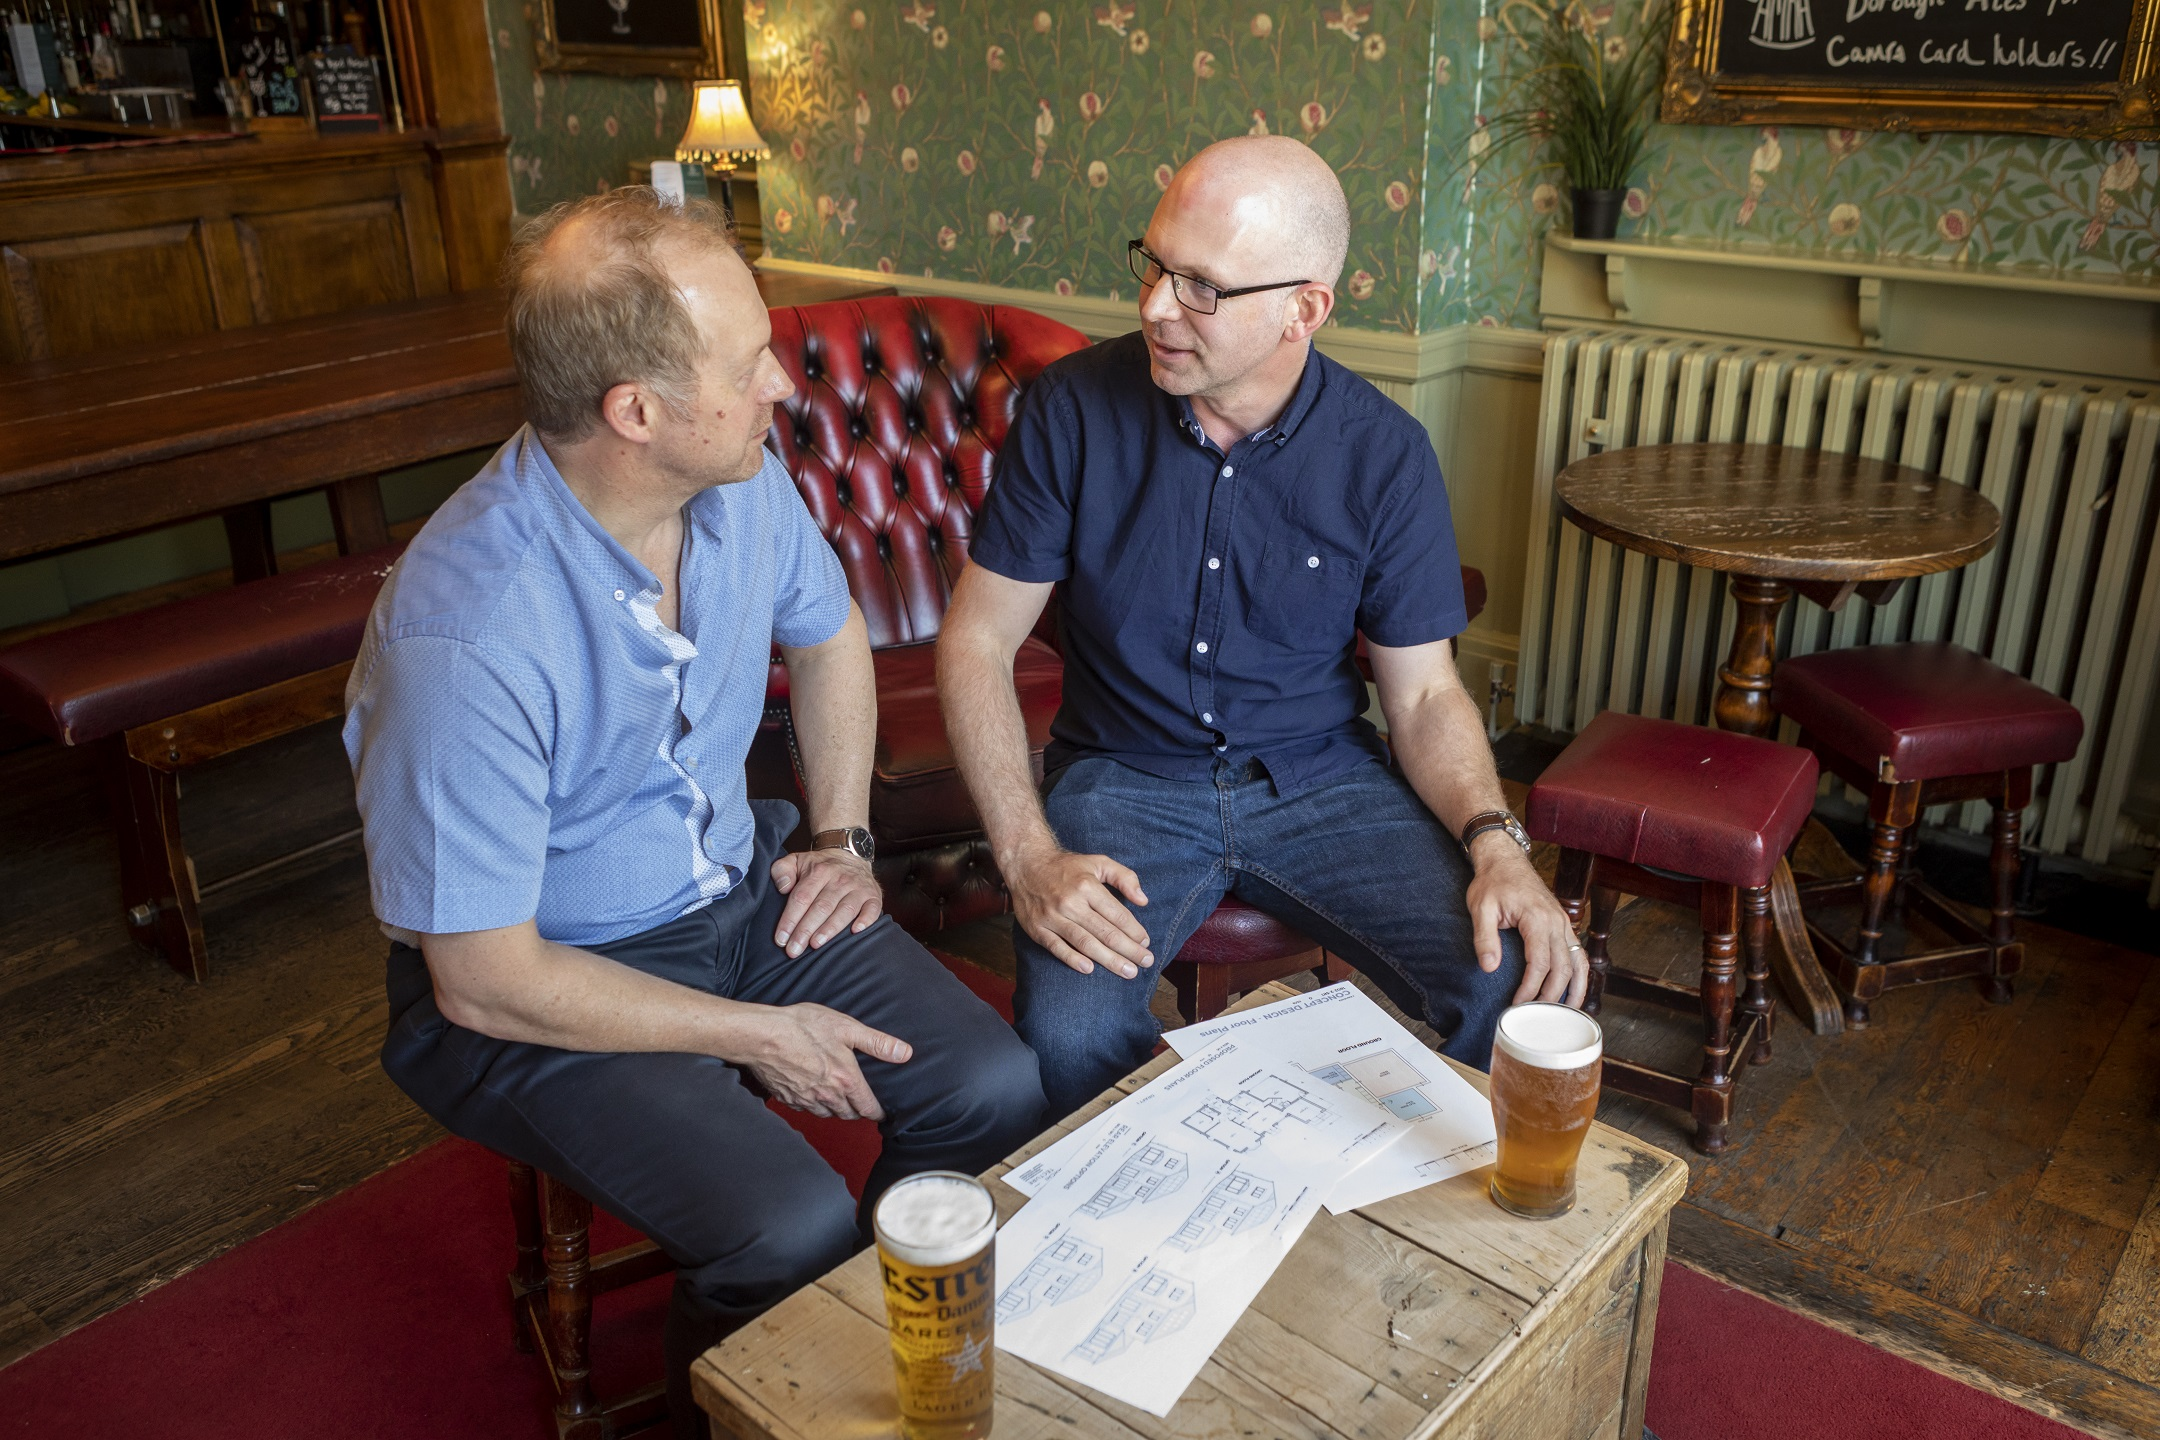 A meeting at the pub with Jon Clayton